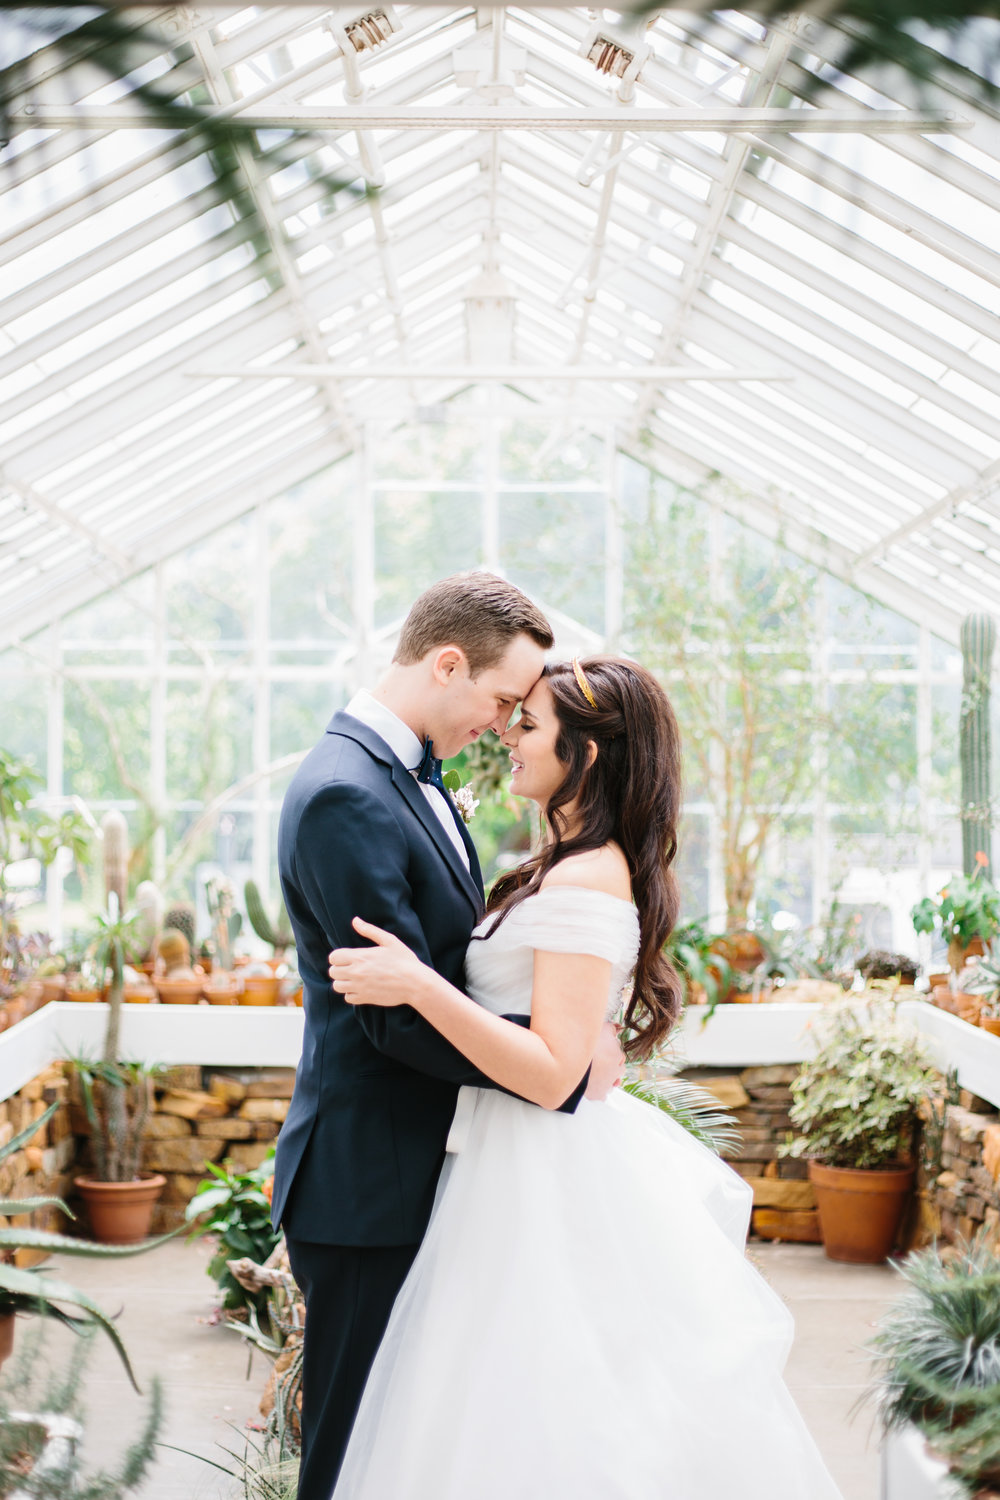 Laurel + Michael | Tulsa Garden Center